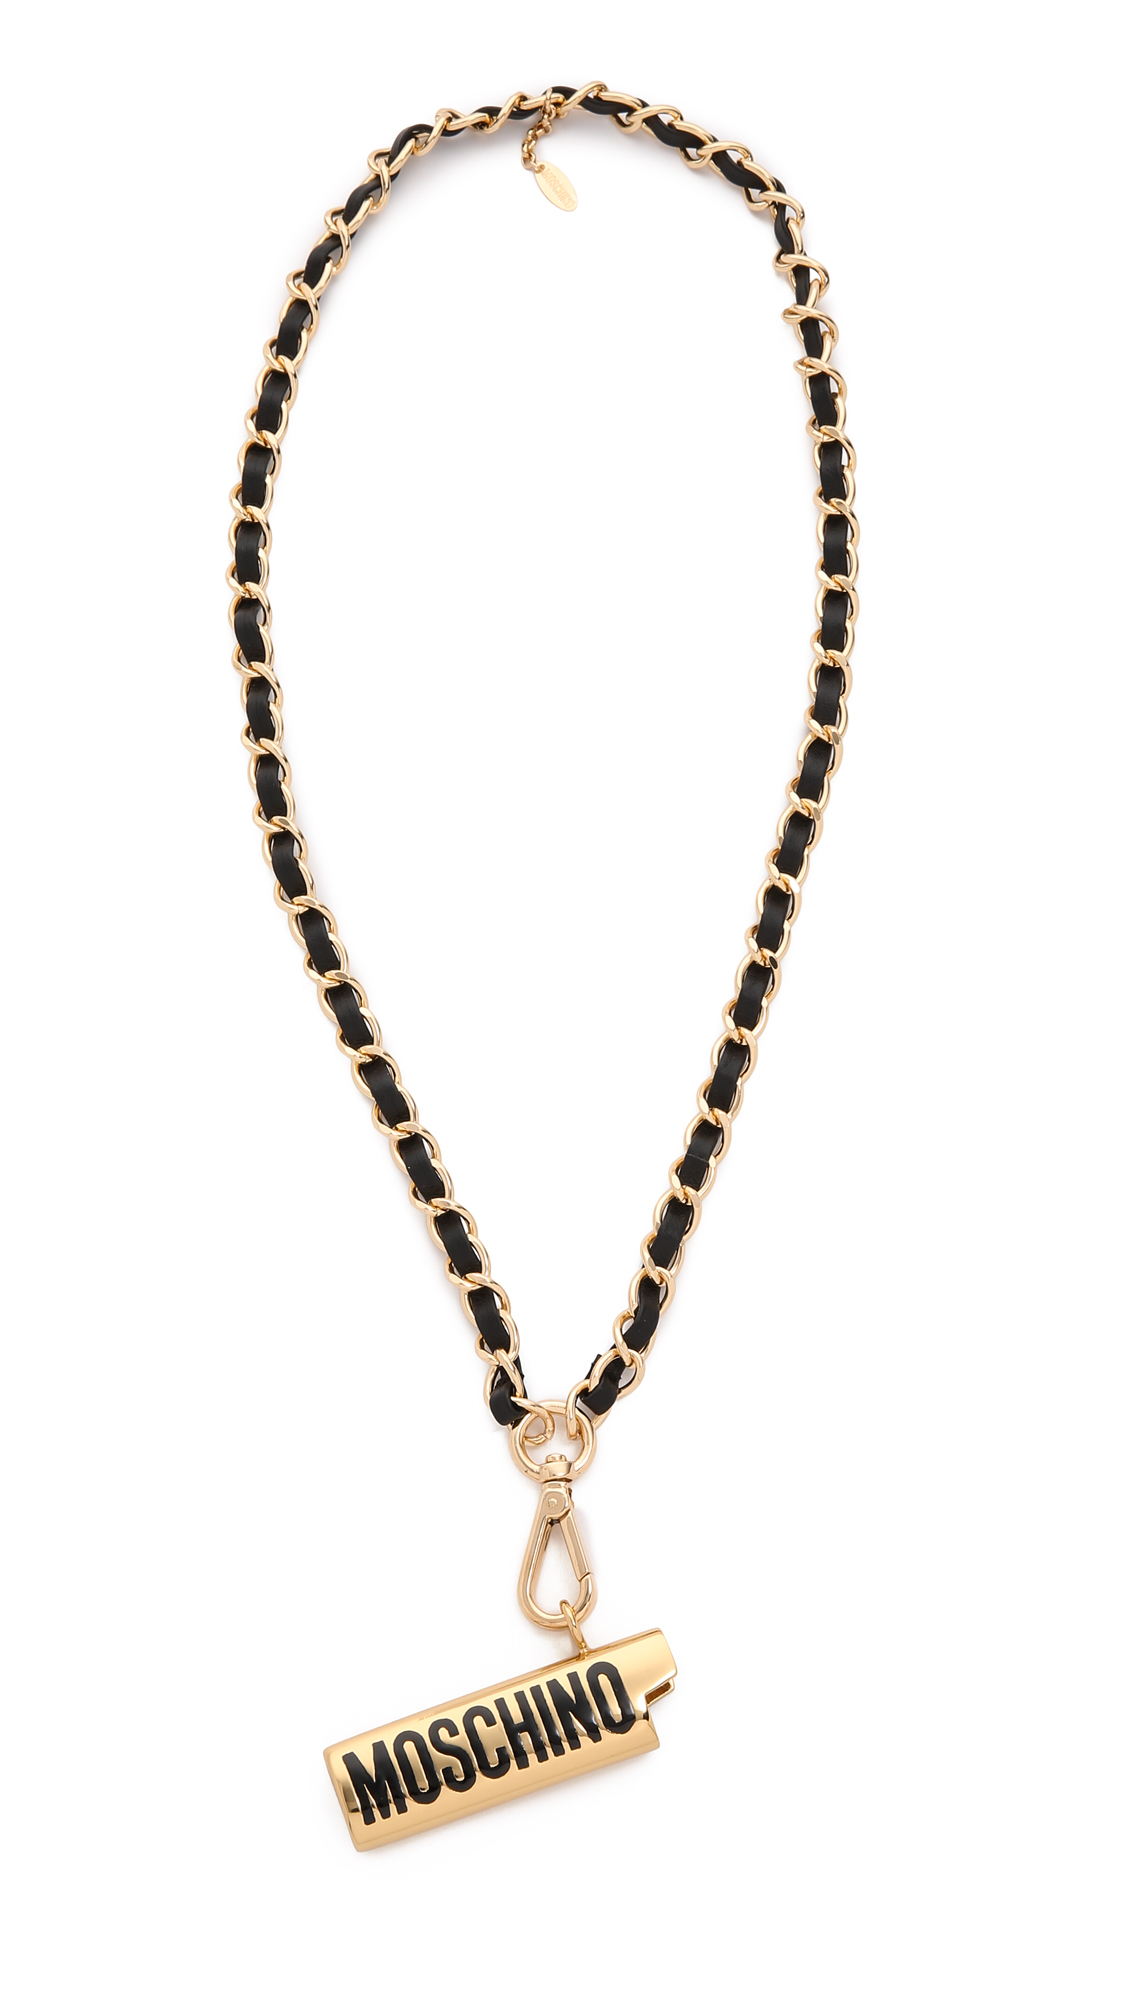 ca7fcb2aec0 Moschino Lighter Necklace - Gold in Black - Lyst